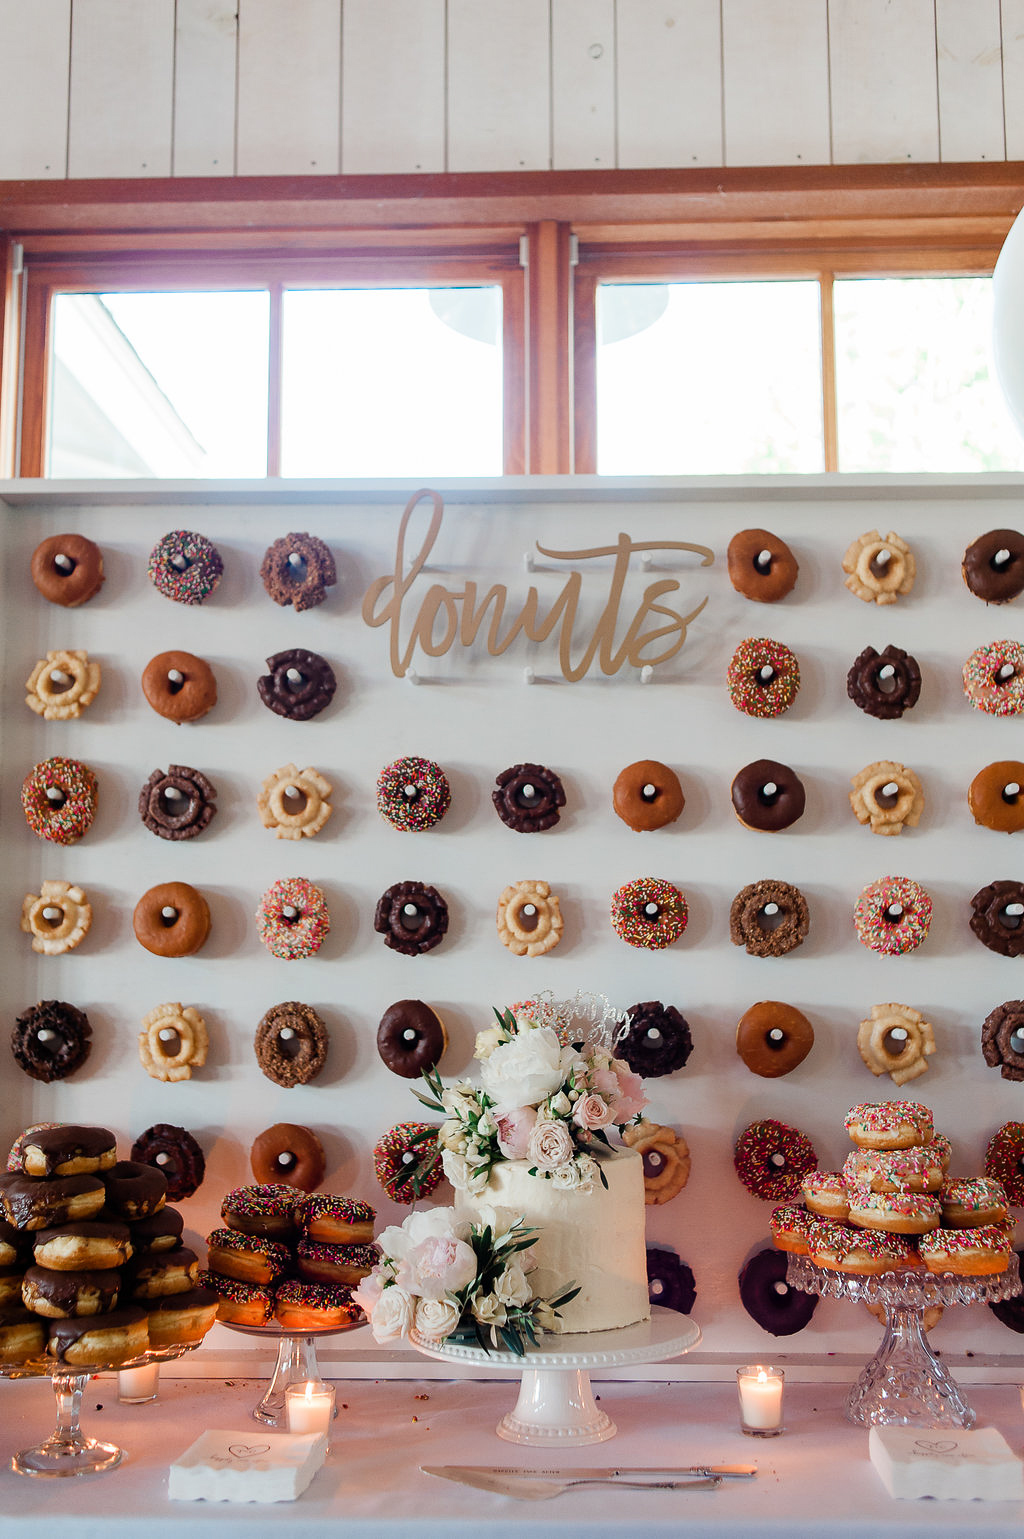 Park Winters Summer Wedding | Wedding Dessert | Wedding Donuts | Donut Wall | Unique Wedding Dessert Ideas | Two-tier wedding cake